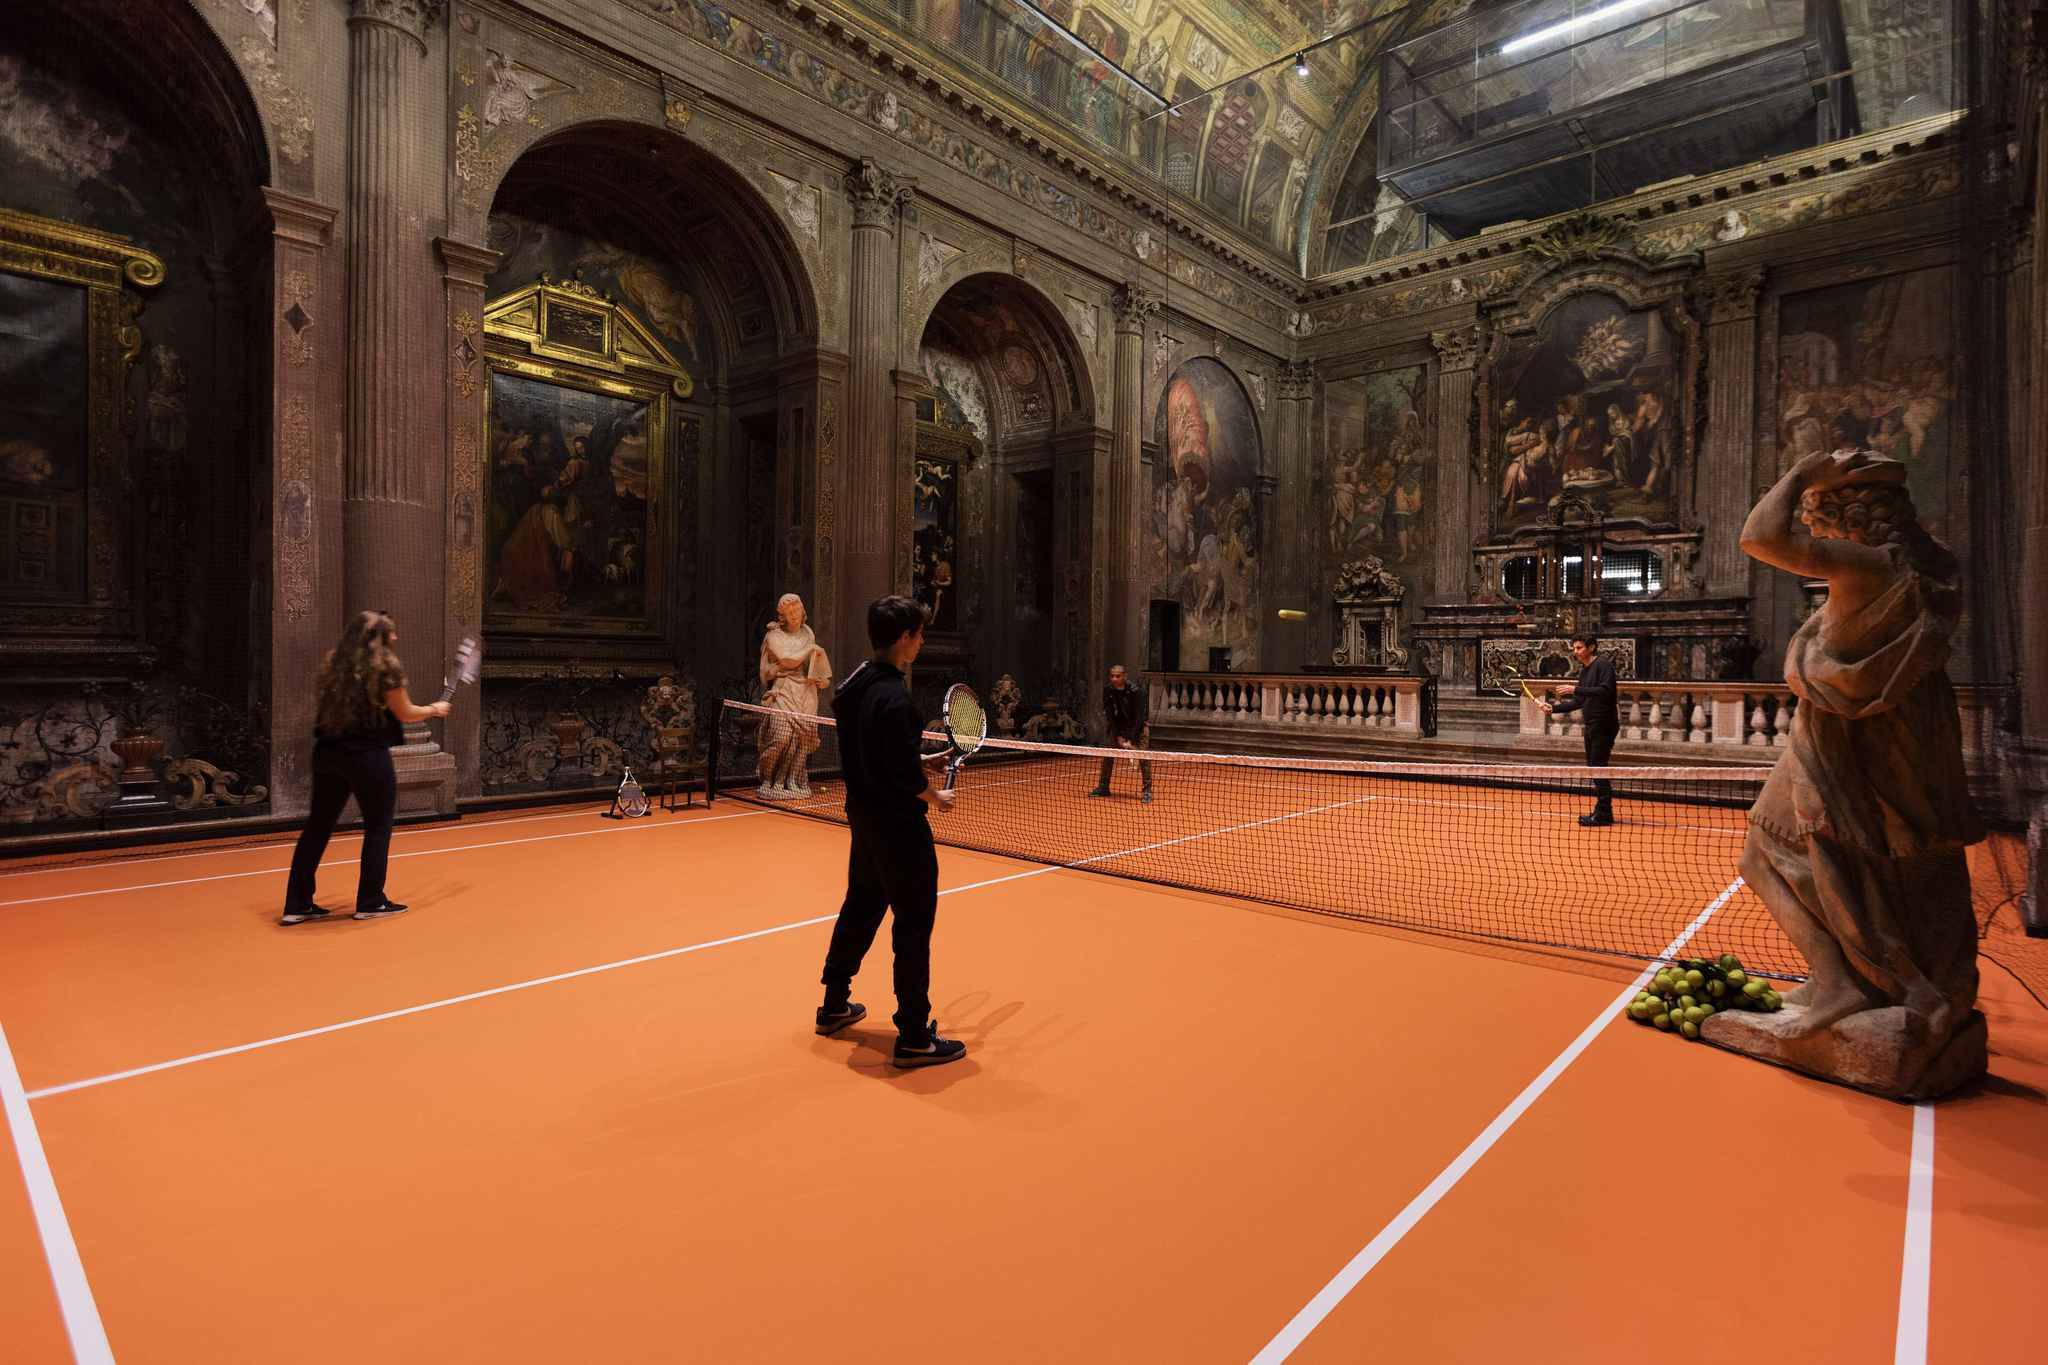 """An artist has transformed the floor of Milan's San Paolo Converso church into a fully functioning tennis court where anyone can play.  Created by New York based artist Asad Raza, the floor, net, rackets, tennis balls, iced tea, and coaches are all part of an interactive art piece named Untitled (Plot for Dialogue), which encourages visitors to play tennis in the beautiful church.  Raza's aim is to fill the space with a new social practice not of receiving messages from on high, but engaging in a two-way exchange and play of equals.  """"For Raza, the game serves as a method of absorbing energetic drives into symbolic but non-harmful practices,"""" reads a description of the piece. """"Visitors become more than spectators - practicing with the coaches, the inhabit their bodies in coordinated action.""""  Erected between 1549 and 1610, the church's frescos display the work of Giulio and Antonio Campi and depict the life of Paul the Apostle. The church was deconsecrated in 1808 following a decree issued by Napoleon and was used as a storage space until 1932, when it was renovated to become a concert hall. The space was also used as a recording studio between the 1960s and the 1980s.  The exhibition is running until 16 December and is free and open to the public from Thursday to Saturday. More information on Untitled (Plot for Dialogue) is available at the Converso website http://www.converso.online.  Where: Milan, Italy When: 16 Nov 2017 Credit: Asad Raza/San Paolo Converso/Cover Images  **EDITORIAL USE ONLY. IMAGES ONLY TO BE USED IN CONJUNCTION WITH EDITORIAL STORY. IMAGE COPYRIGHT REMAINS WITH THE PHOTOGRAPHER AND/OR SUPPLIER.**/COVER33326374/EDITORIAL USE ONLY. IMAGES ONLY TO BE USED IN CONJUNCTION WITH EDITORIAL STORY. IMAGE COPYRIGHT REMAINS WITH THE PHOTOGRAPHER AND/OR SUPPLIER./1711161842"""